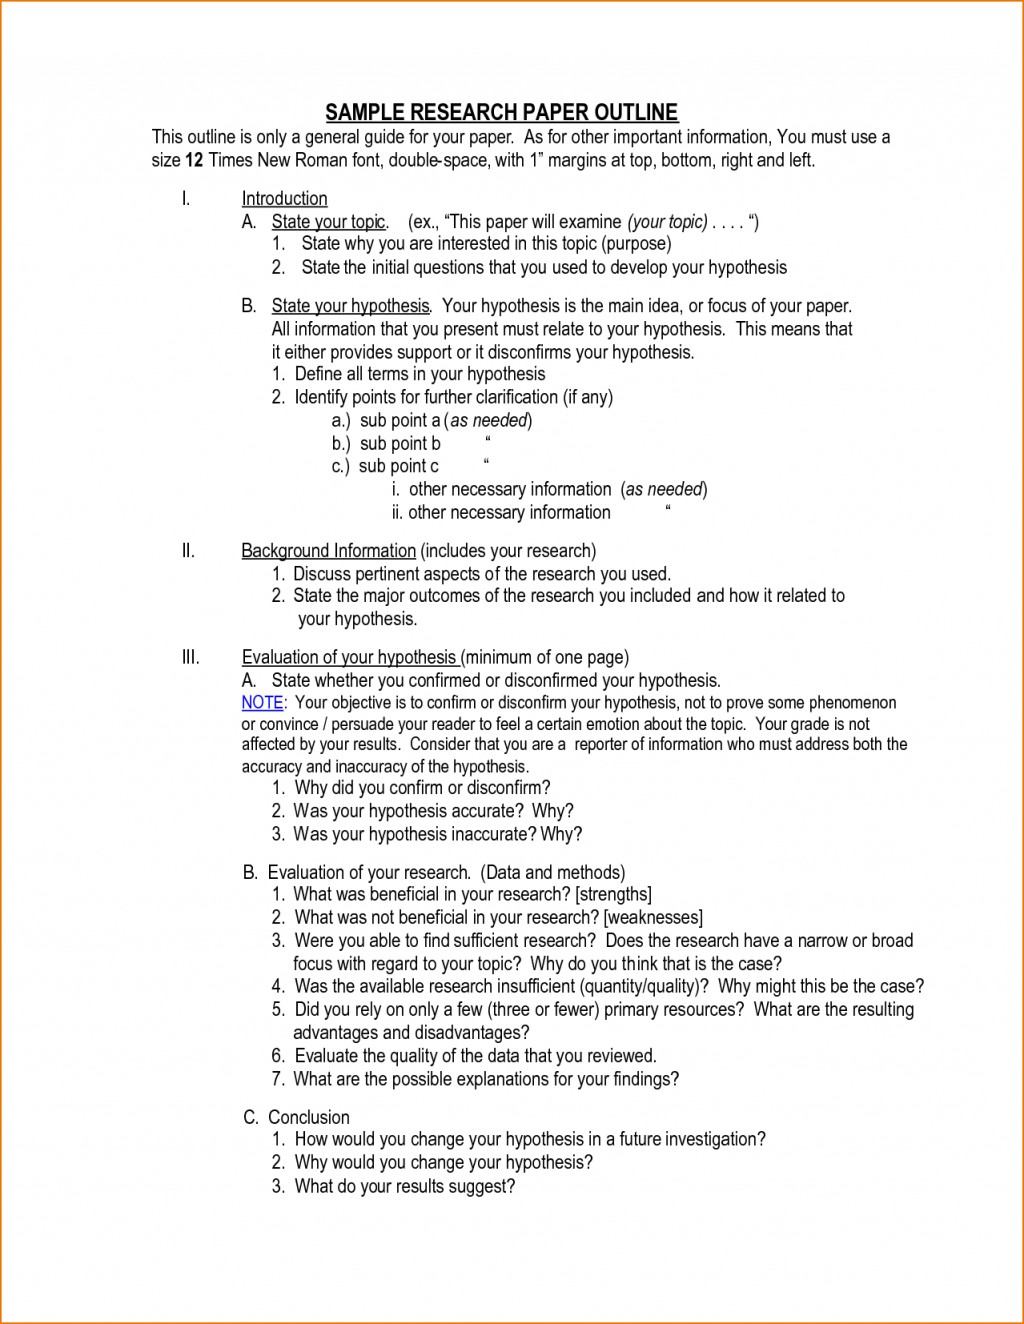 016 Outline Template For Research Paper Magnificent Hypothesis Writing In Null Meaning Large